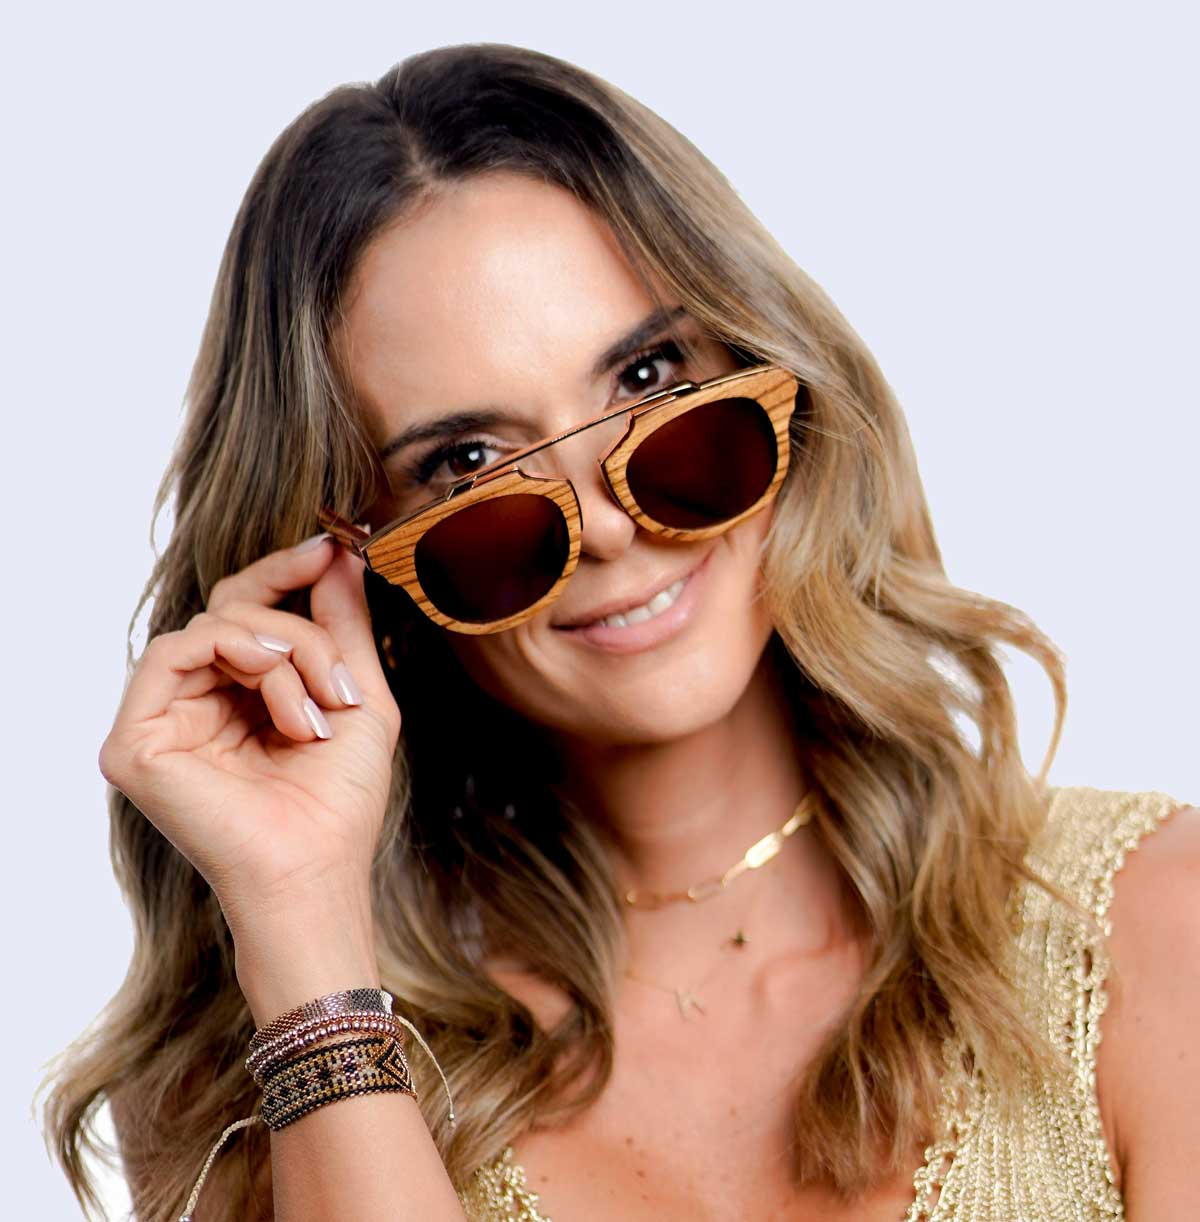 Wooden sunglasses as a natural trend